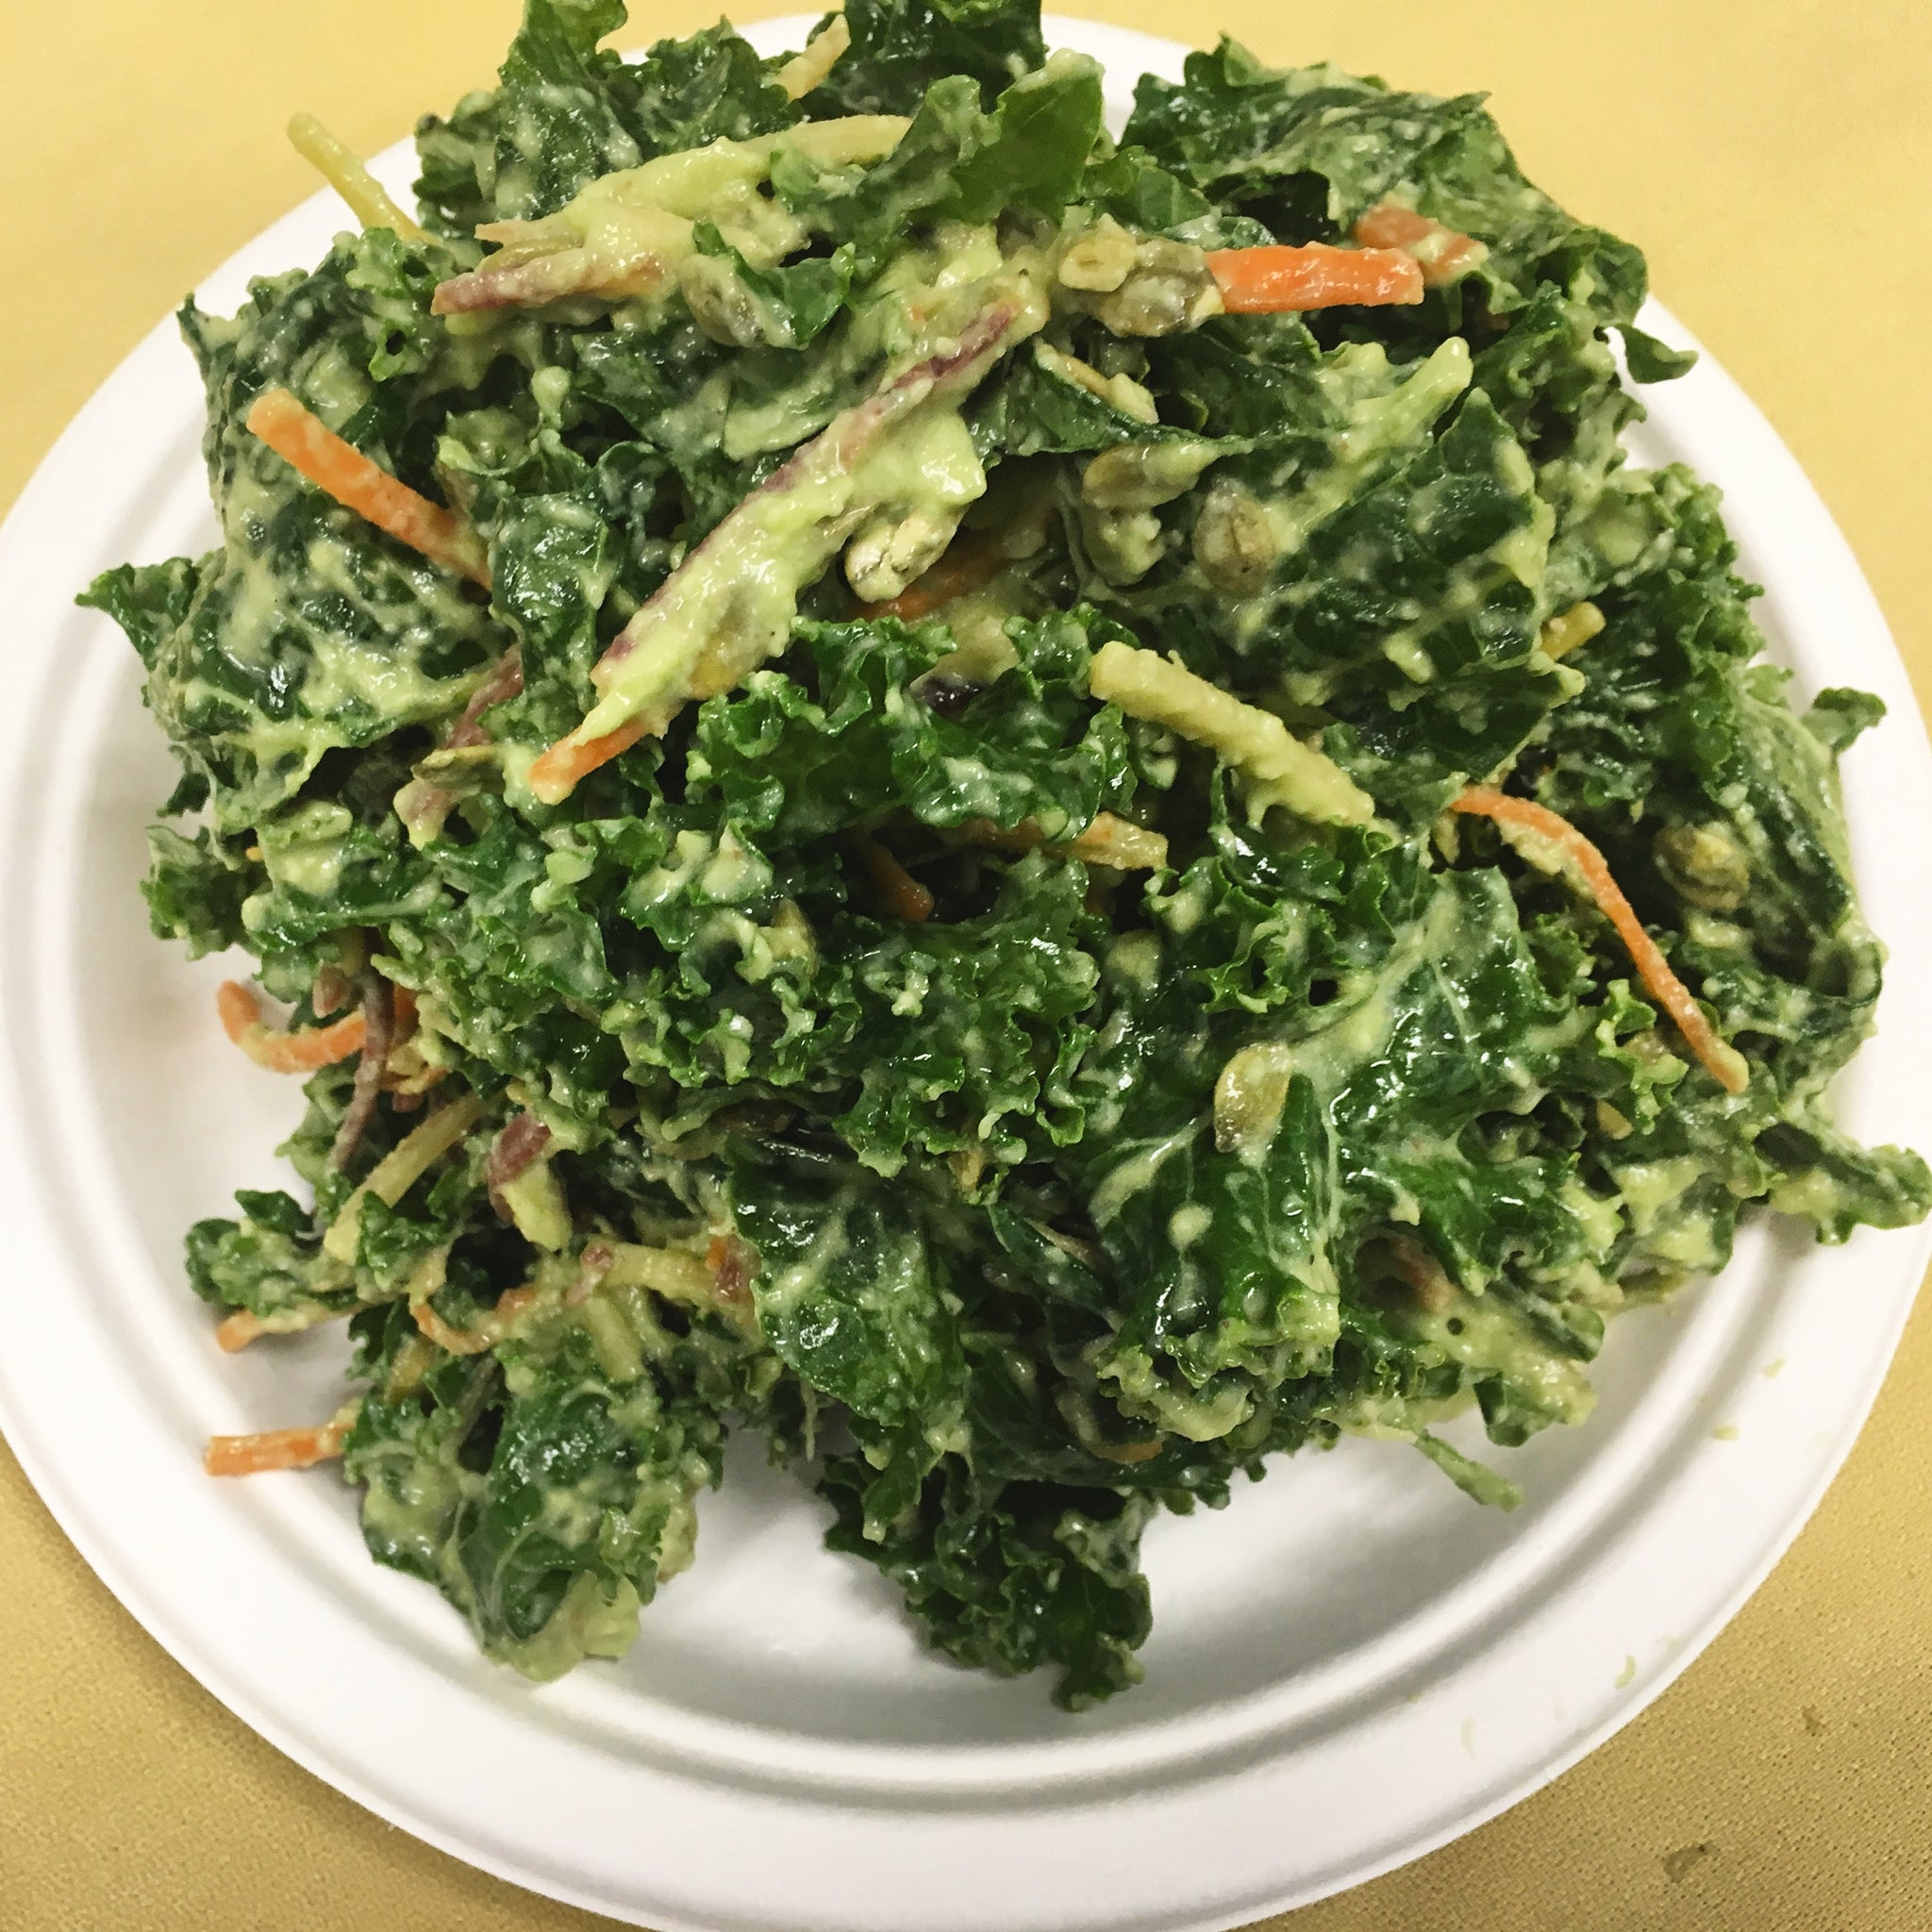 Salad - Kale Avocado Salad, gluten-free/raw/vegan